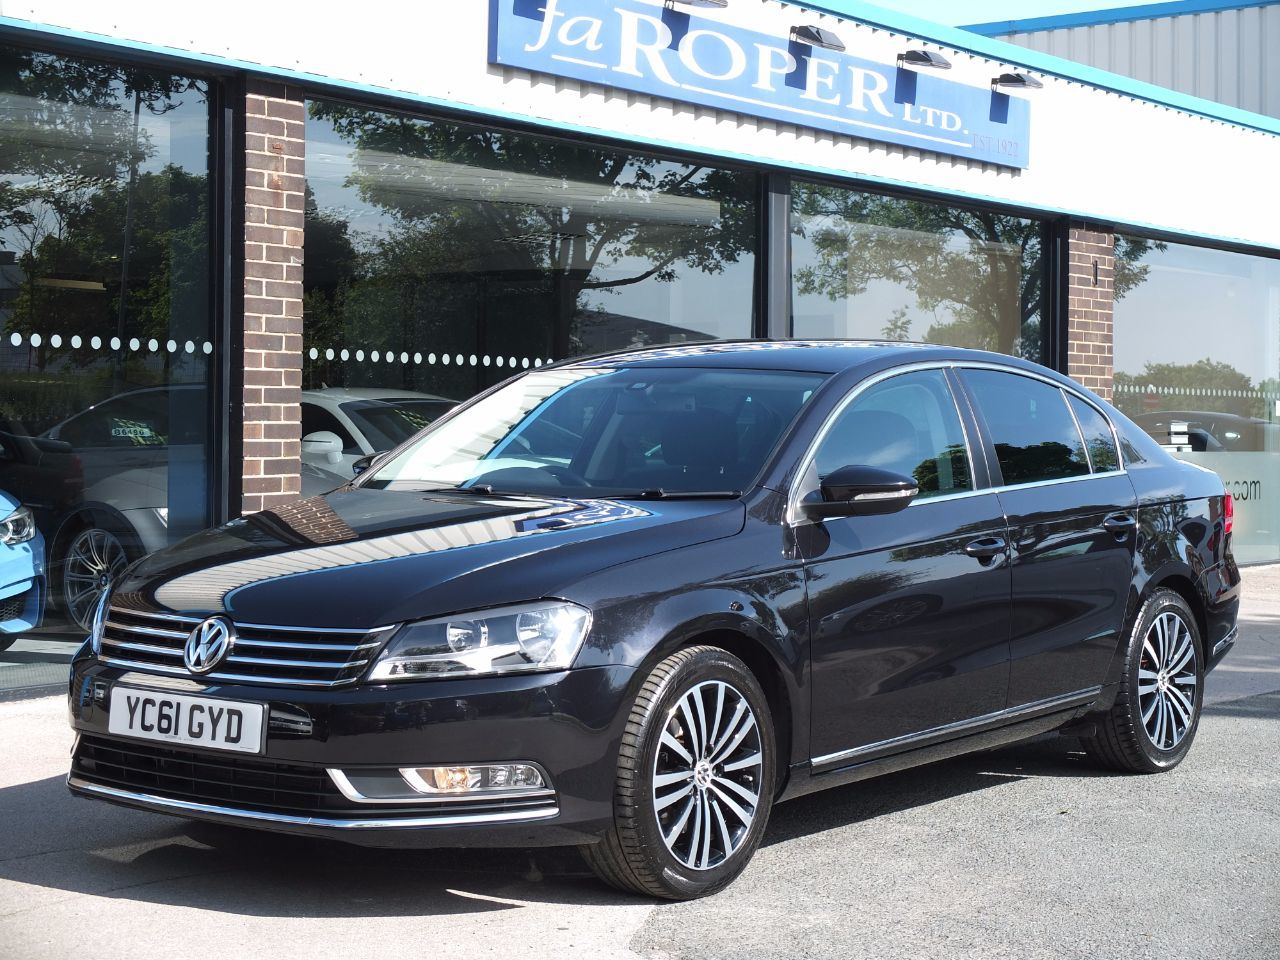 Volkswagen Passat 2.0 TDI Bluemotion Tech Sport 4 Door 140ps Saloon Diesel Deep Black Metallic,